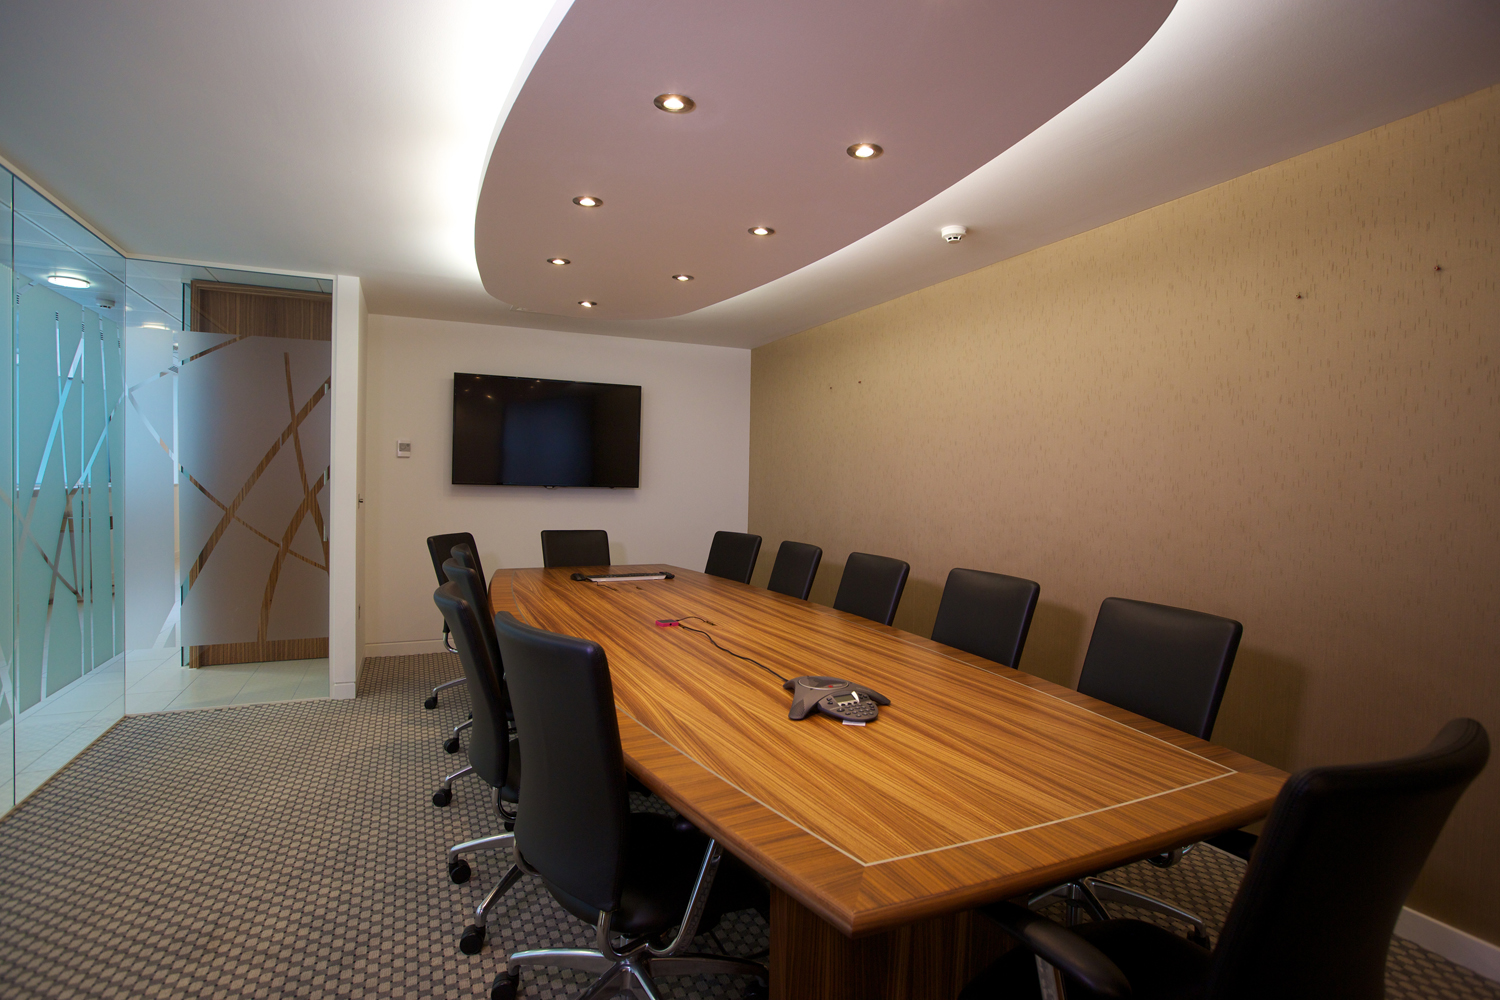 Meeting room hire from Animo Associates across the world in corporate office locations